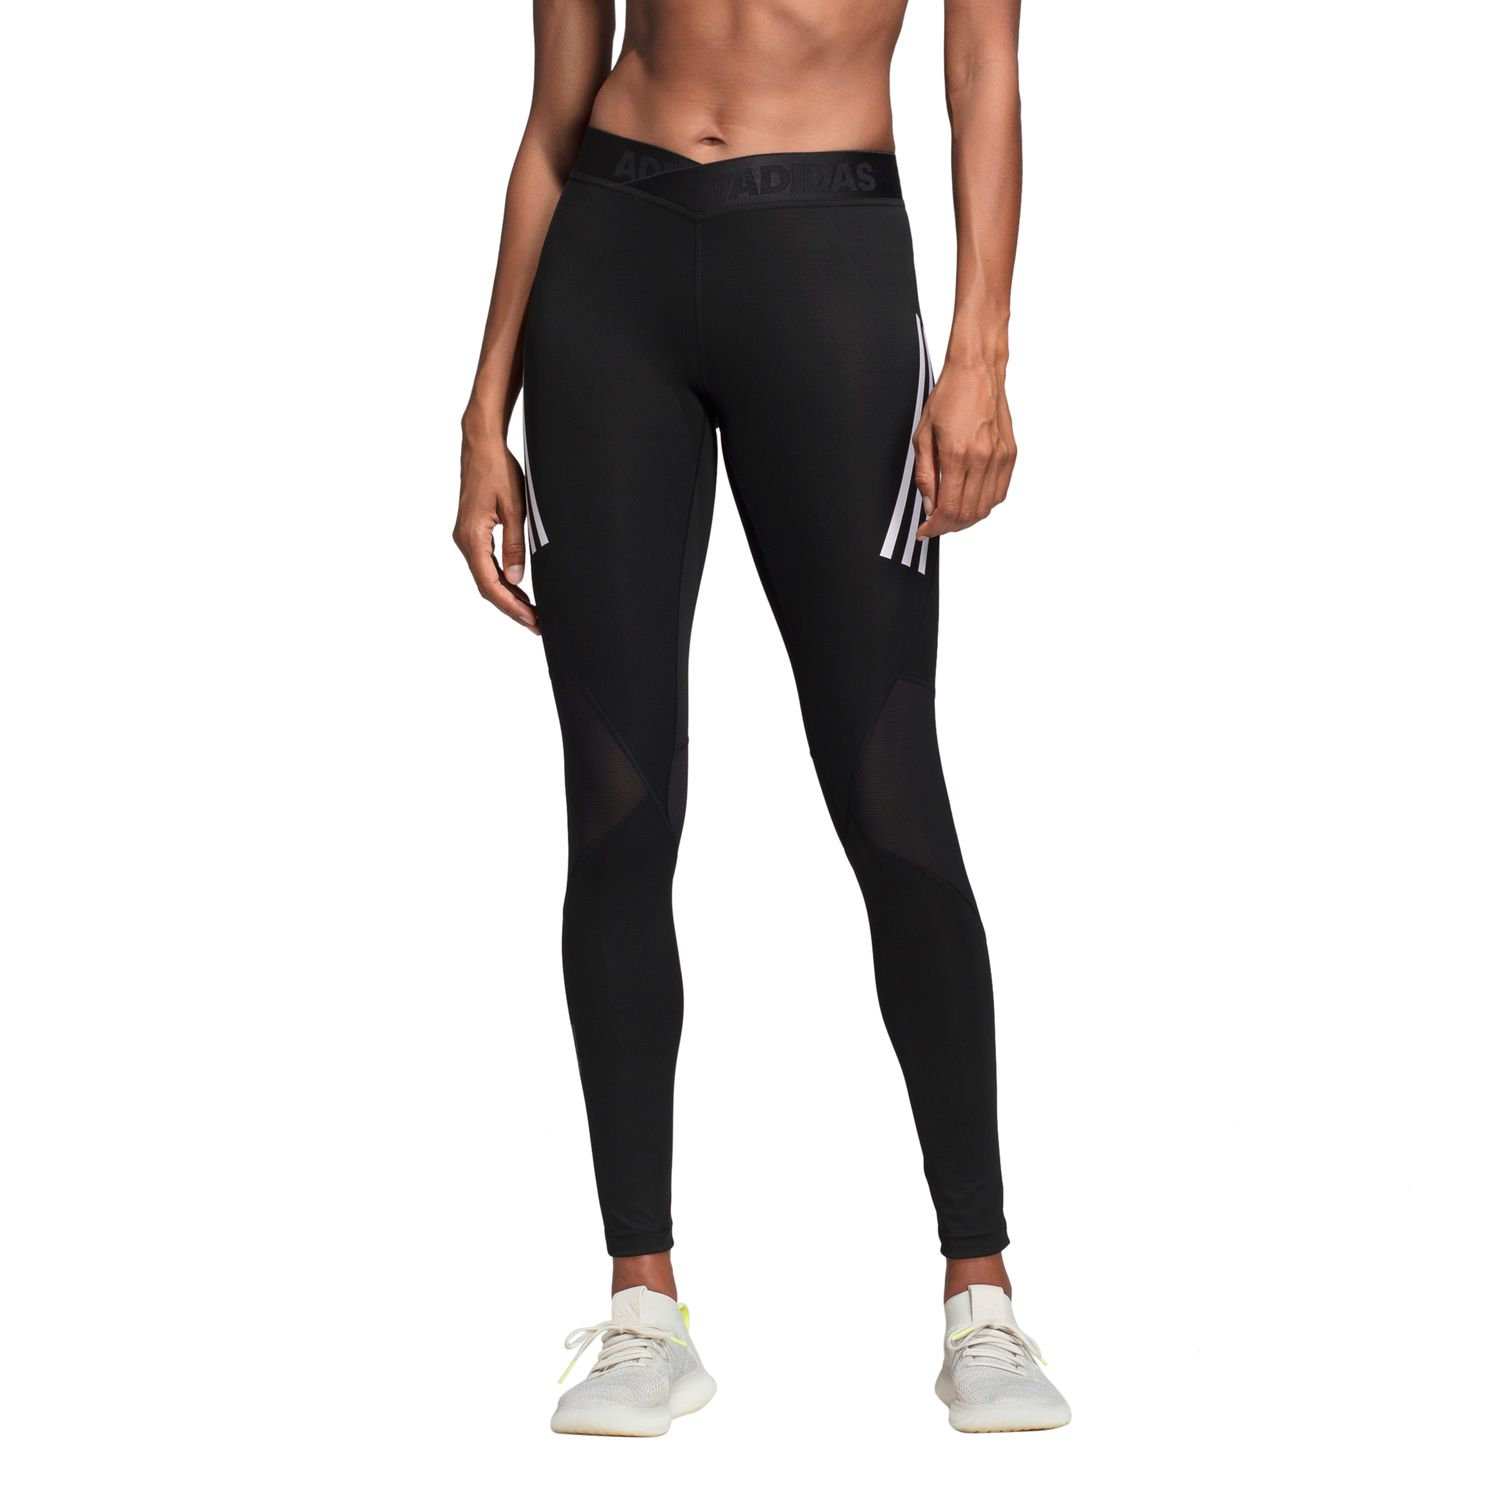 adidas Alphaskin Sport 3-Streifen lange Tight Damen Leggings – Bild 3